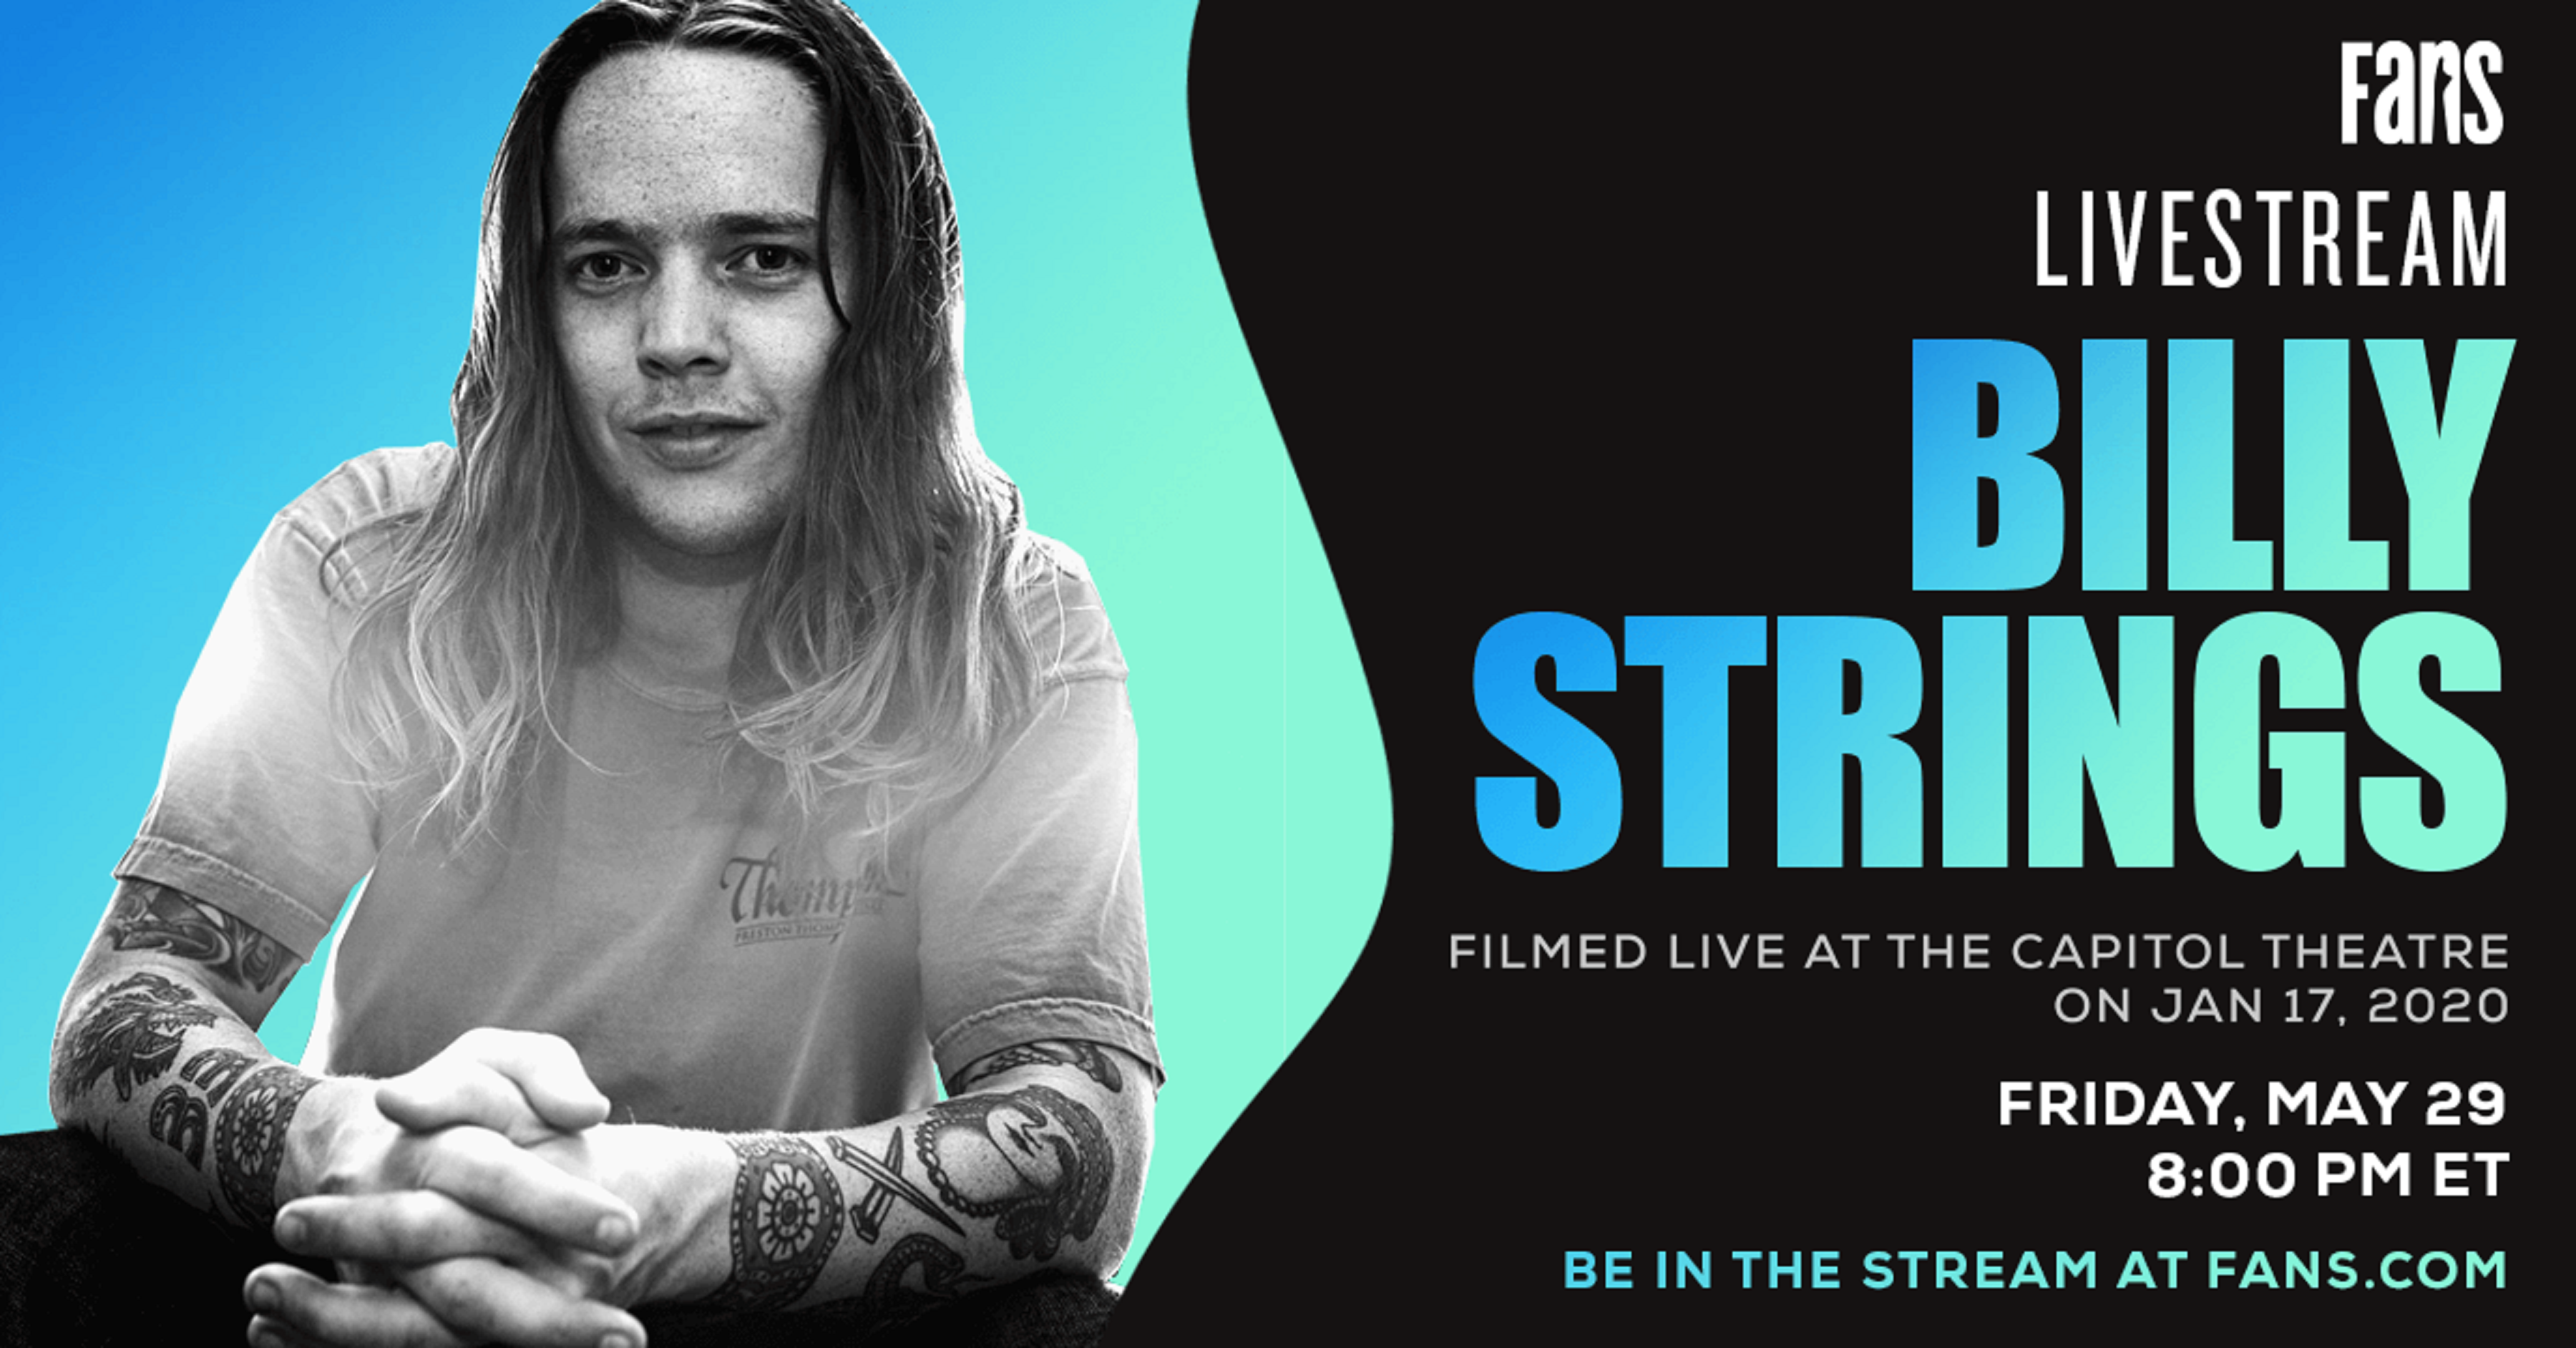 FANS announces Billy Strings livestream on Friday, May 29